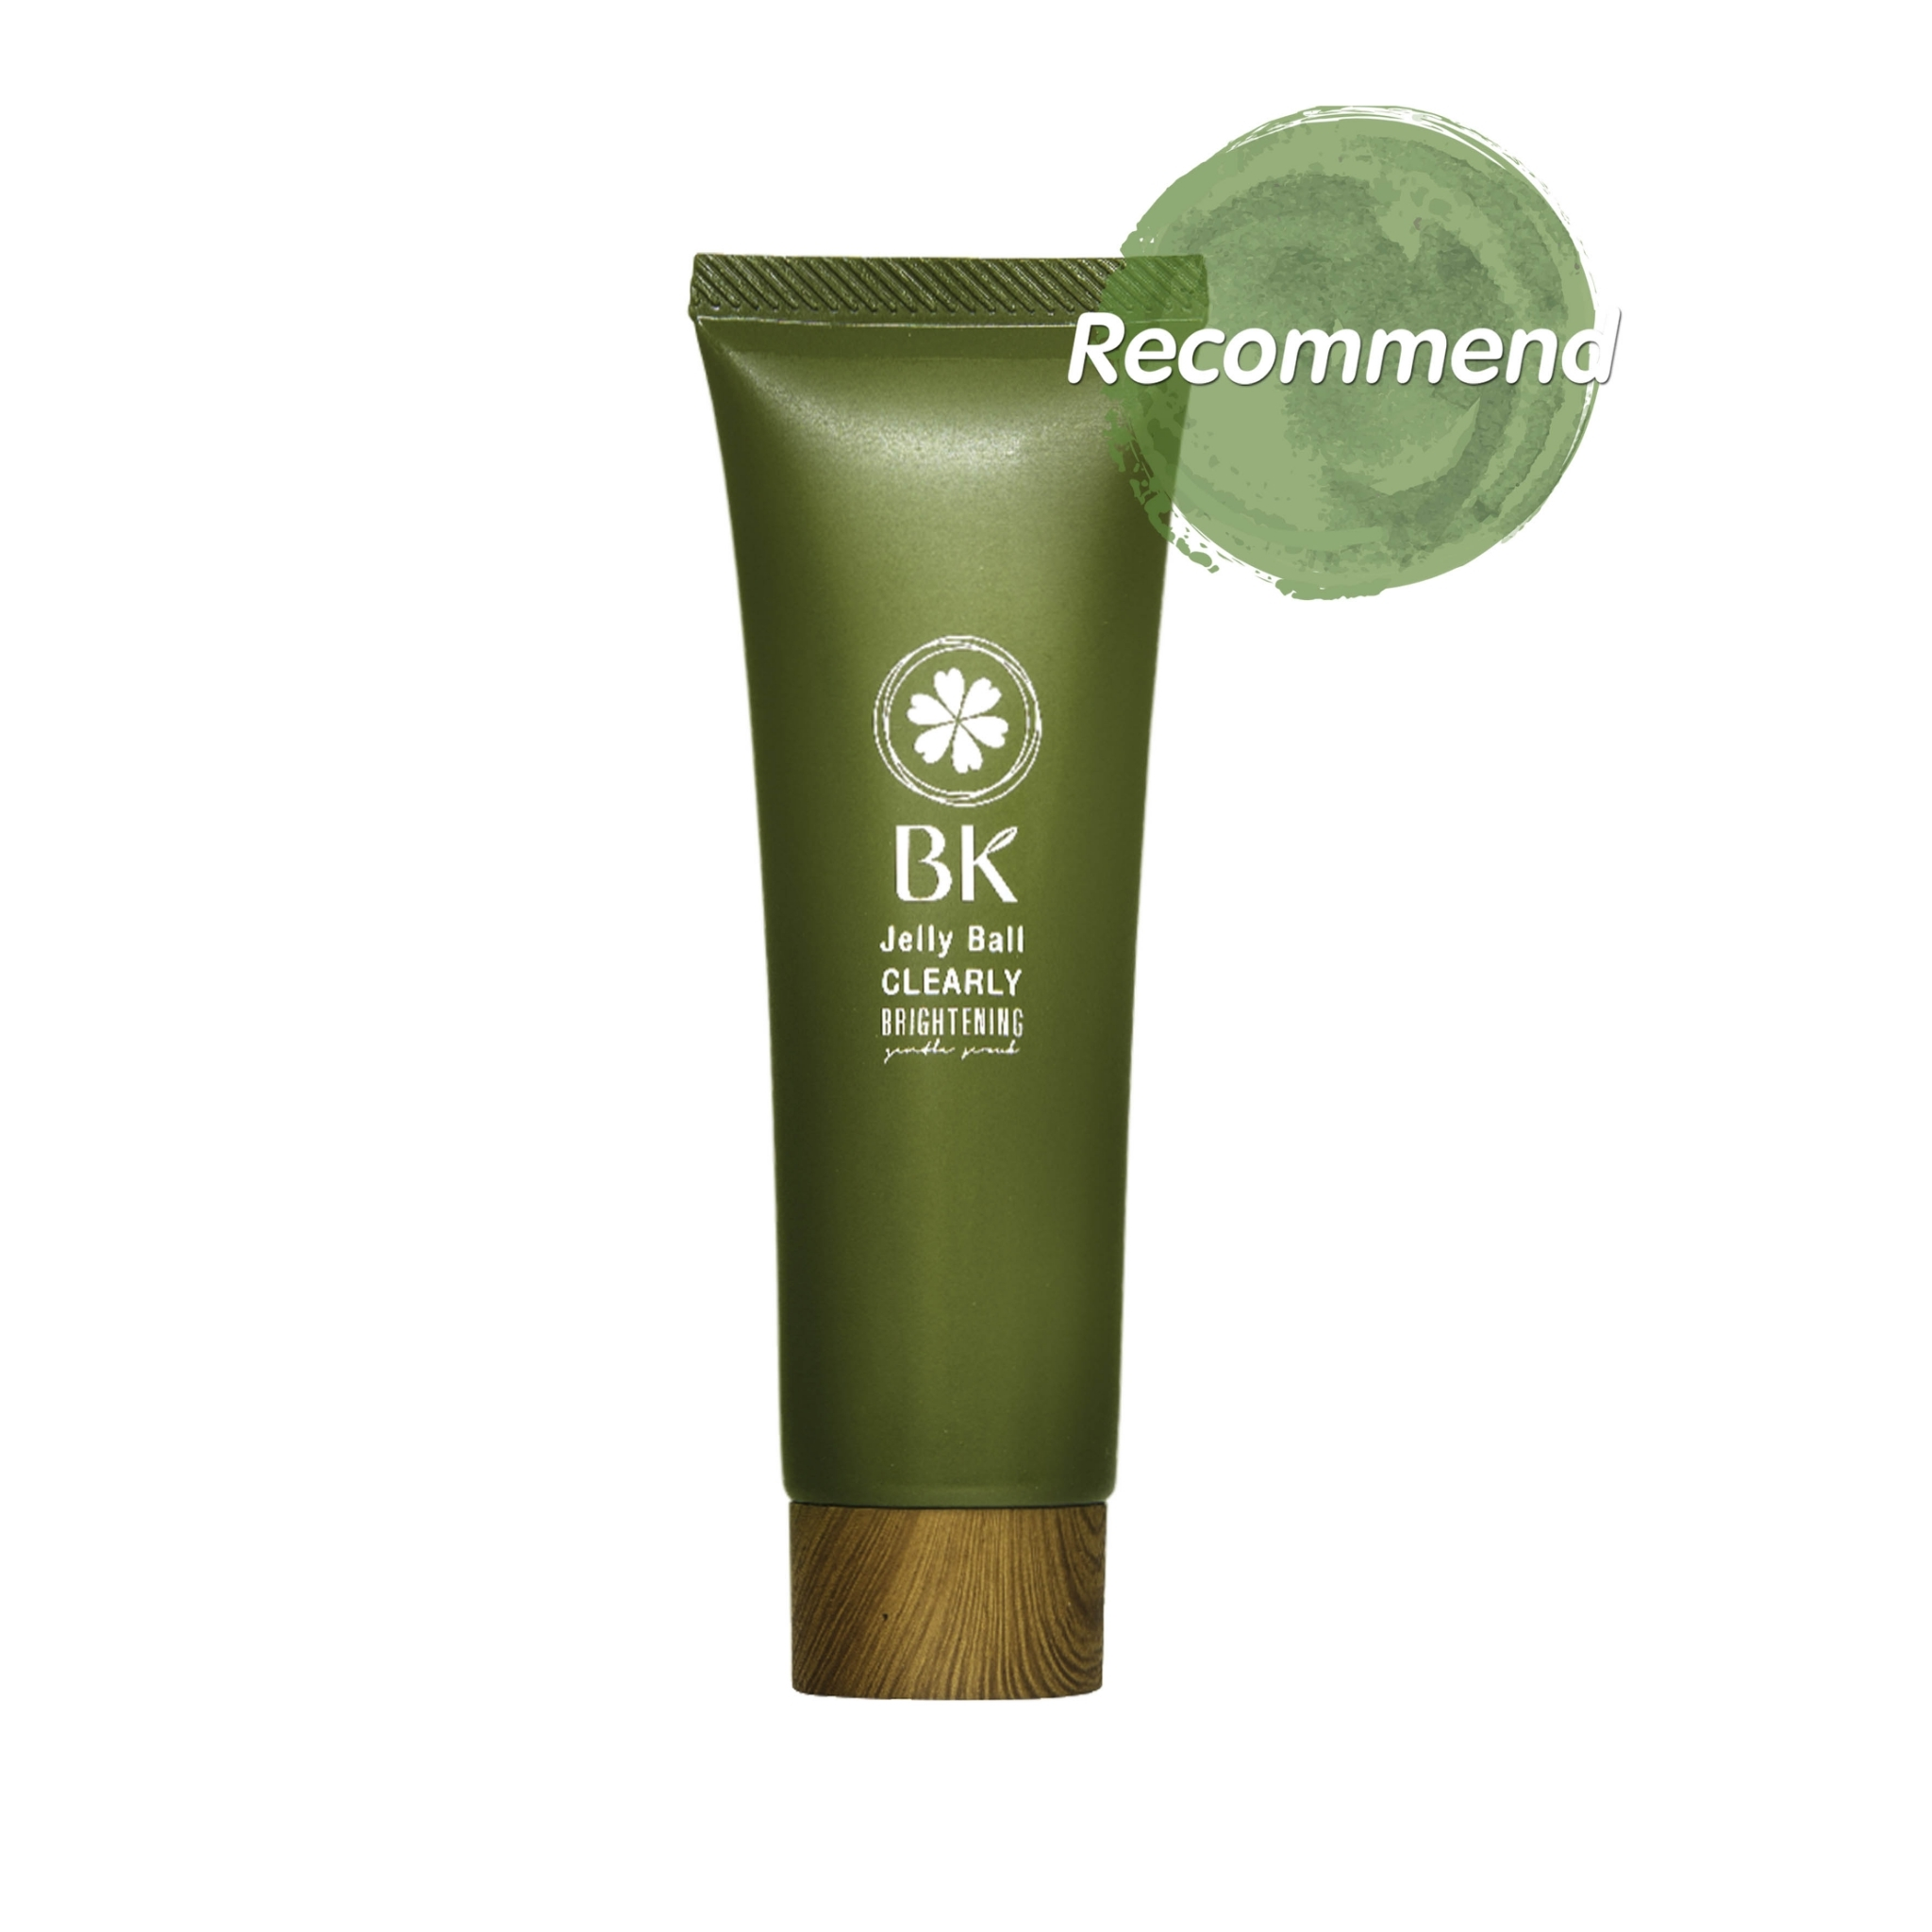 >> BK Jelly Ball Clearly Brightening Gentle Scrub 1 หลอด <<